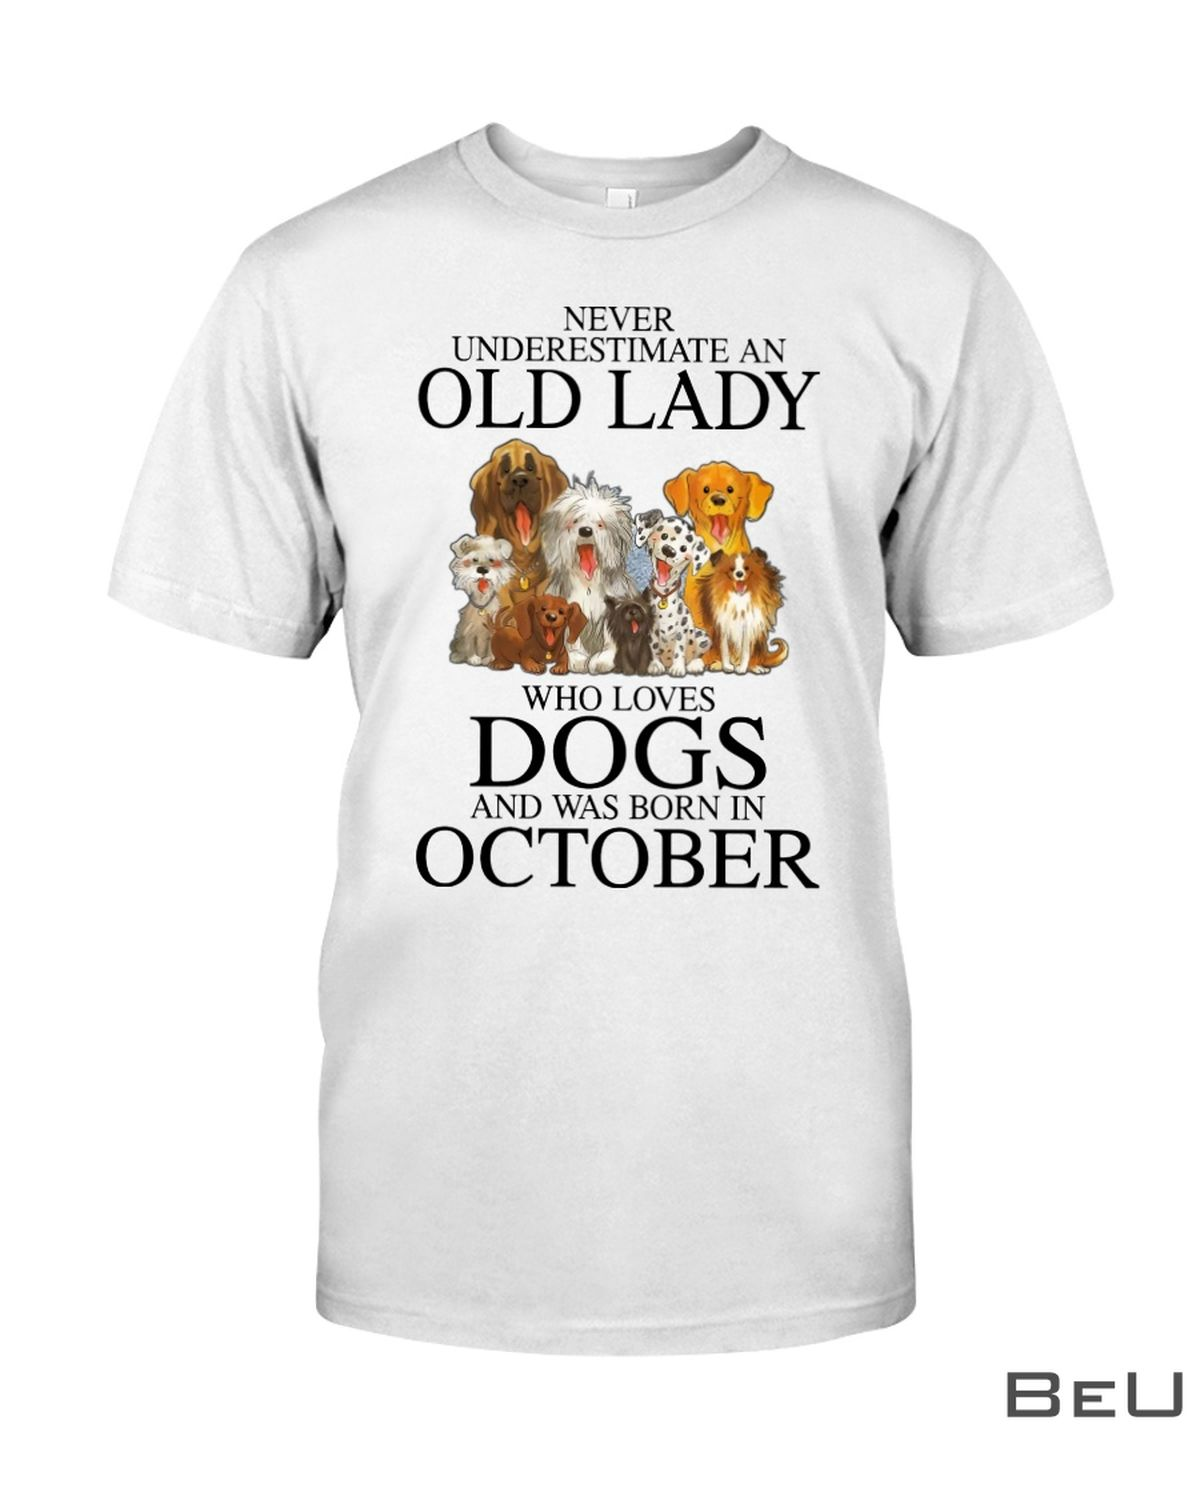 Never Underestimate An October Old Lady Who Loves Dogs Shirt